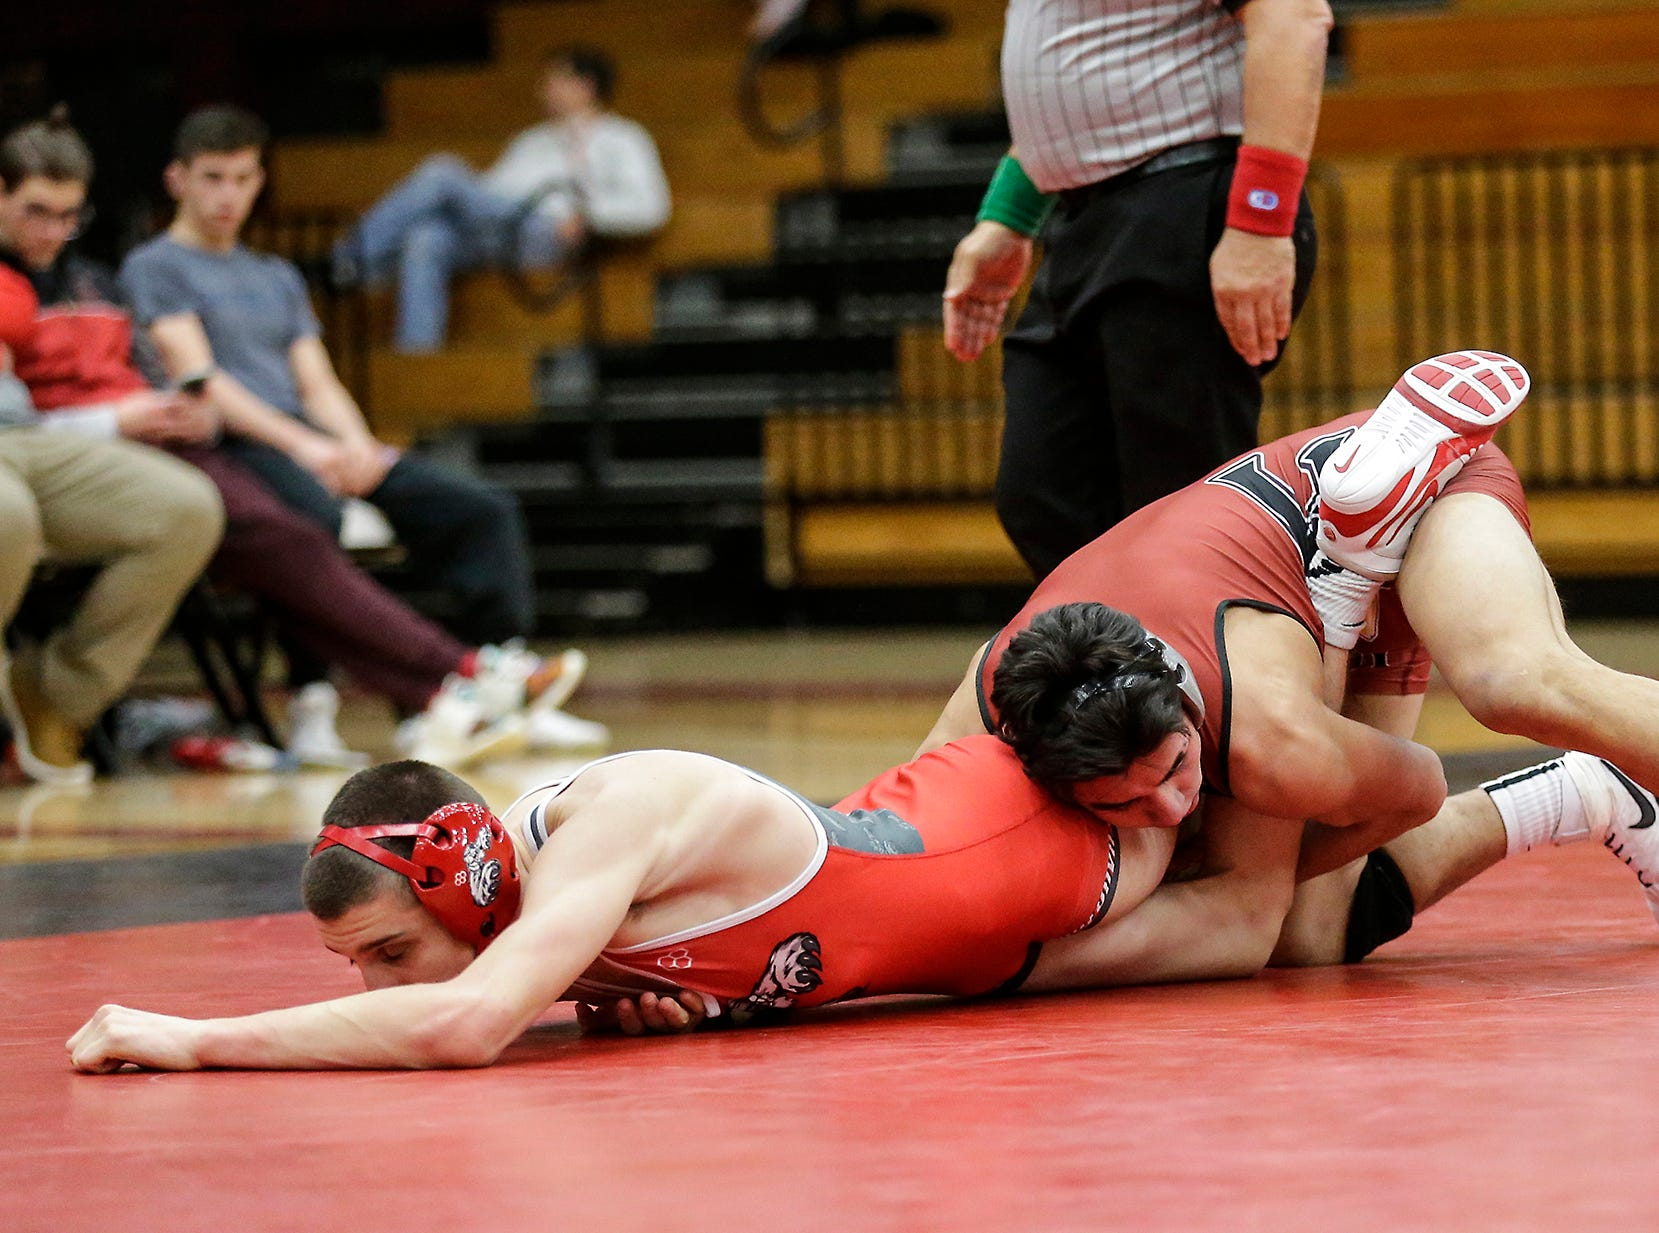 Fond du Lac High School wrestling's Issac Ortegon wrestles against Hortonville High School's Jacob Collar in the 145 weight class during their meet Thrusday, December 6, 2018 in Fond du Lac, Wisconsin. Ortegon won the match with a pin and Fond du Lac won the meet 51-18. Doug Raflik/USA TODAY NETWORK-Wisconsin